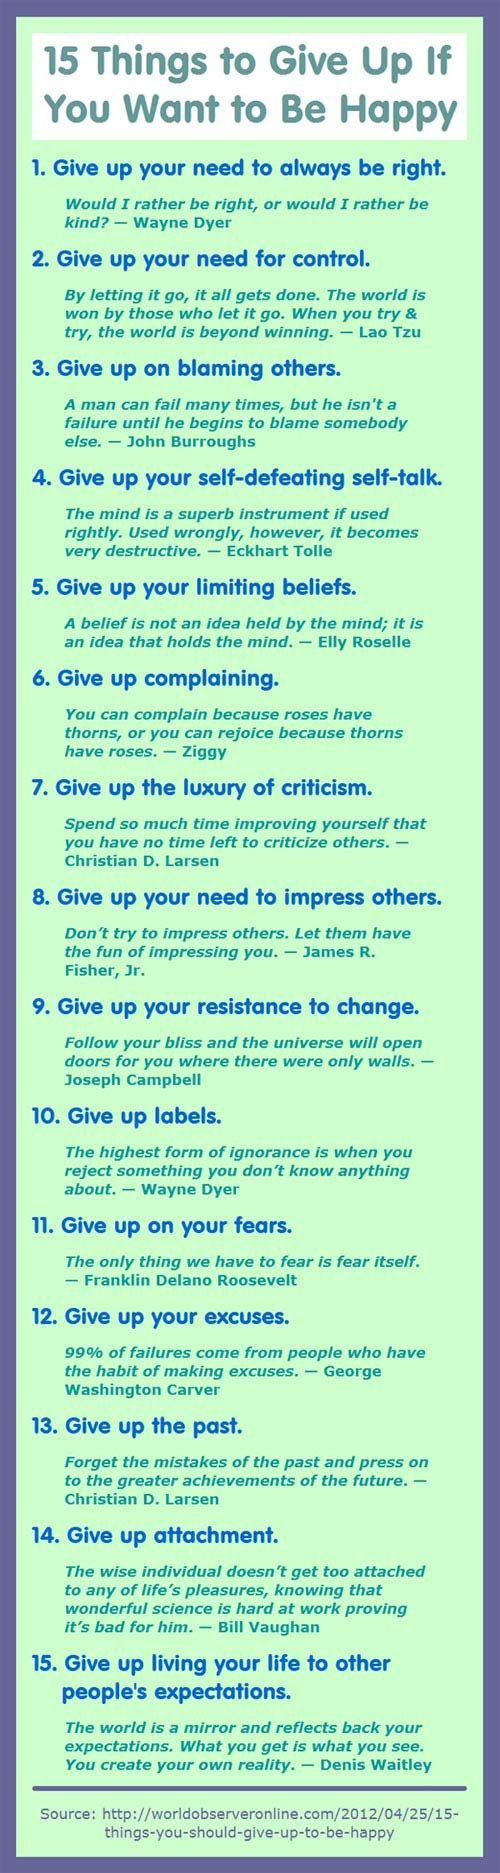 15 Things to Give Up If You Want To Be Happy #inspiration #happiness